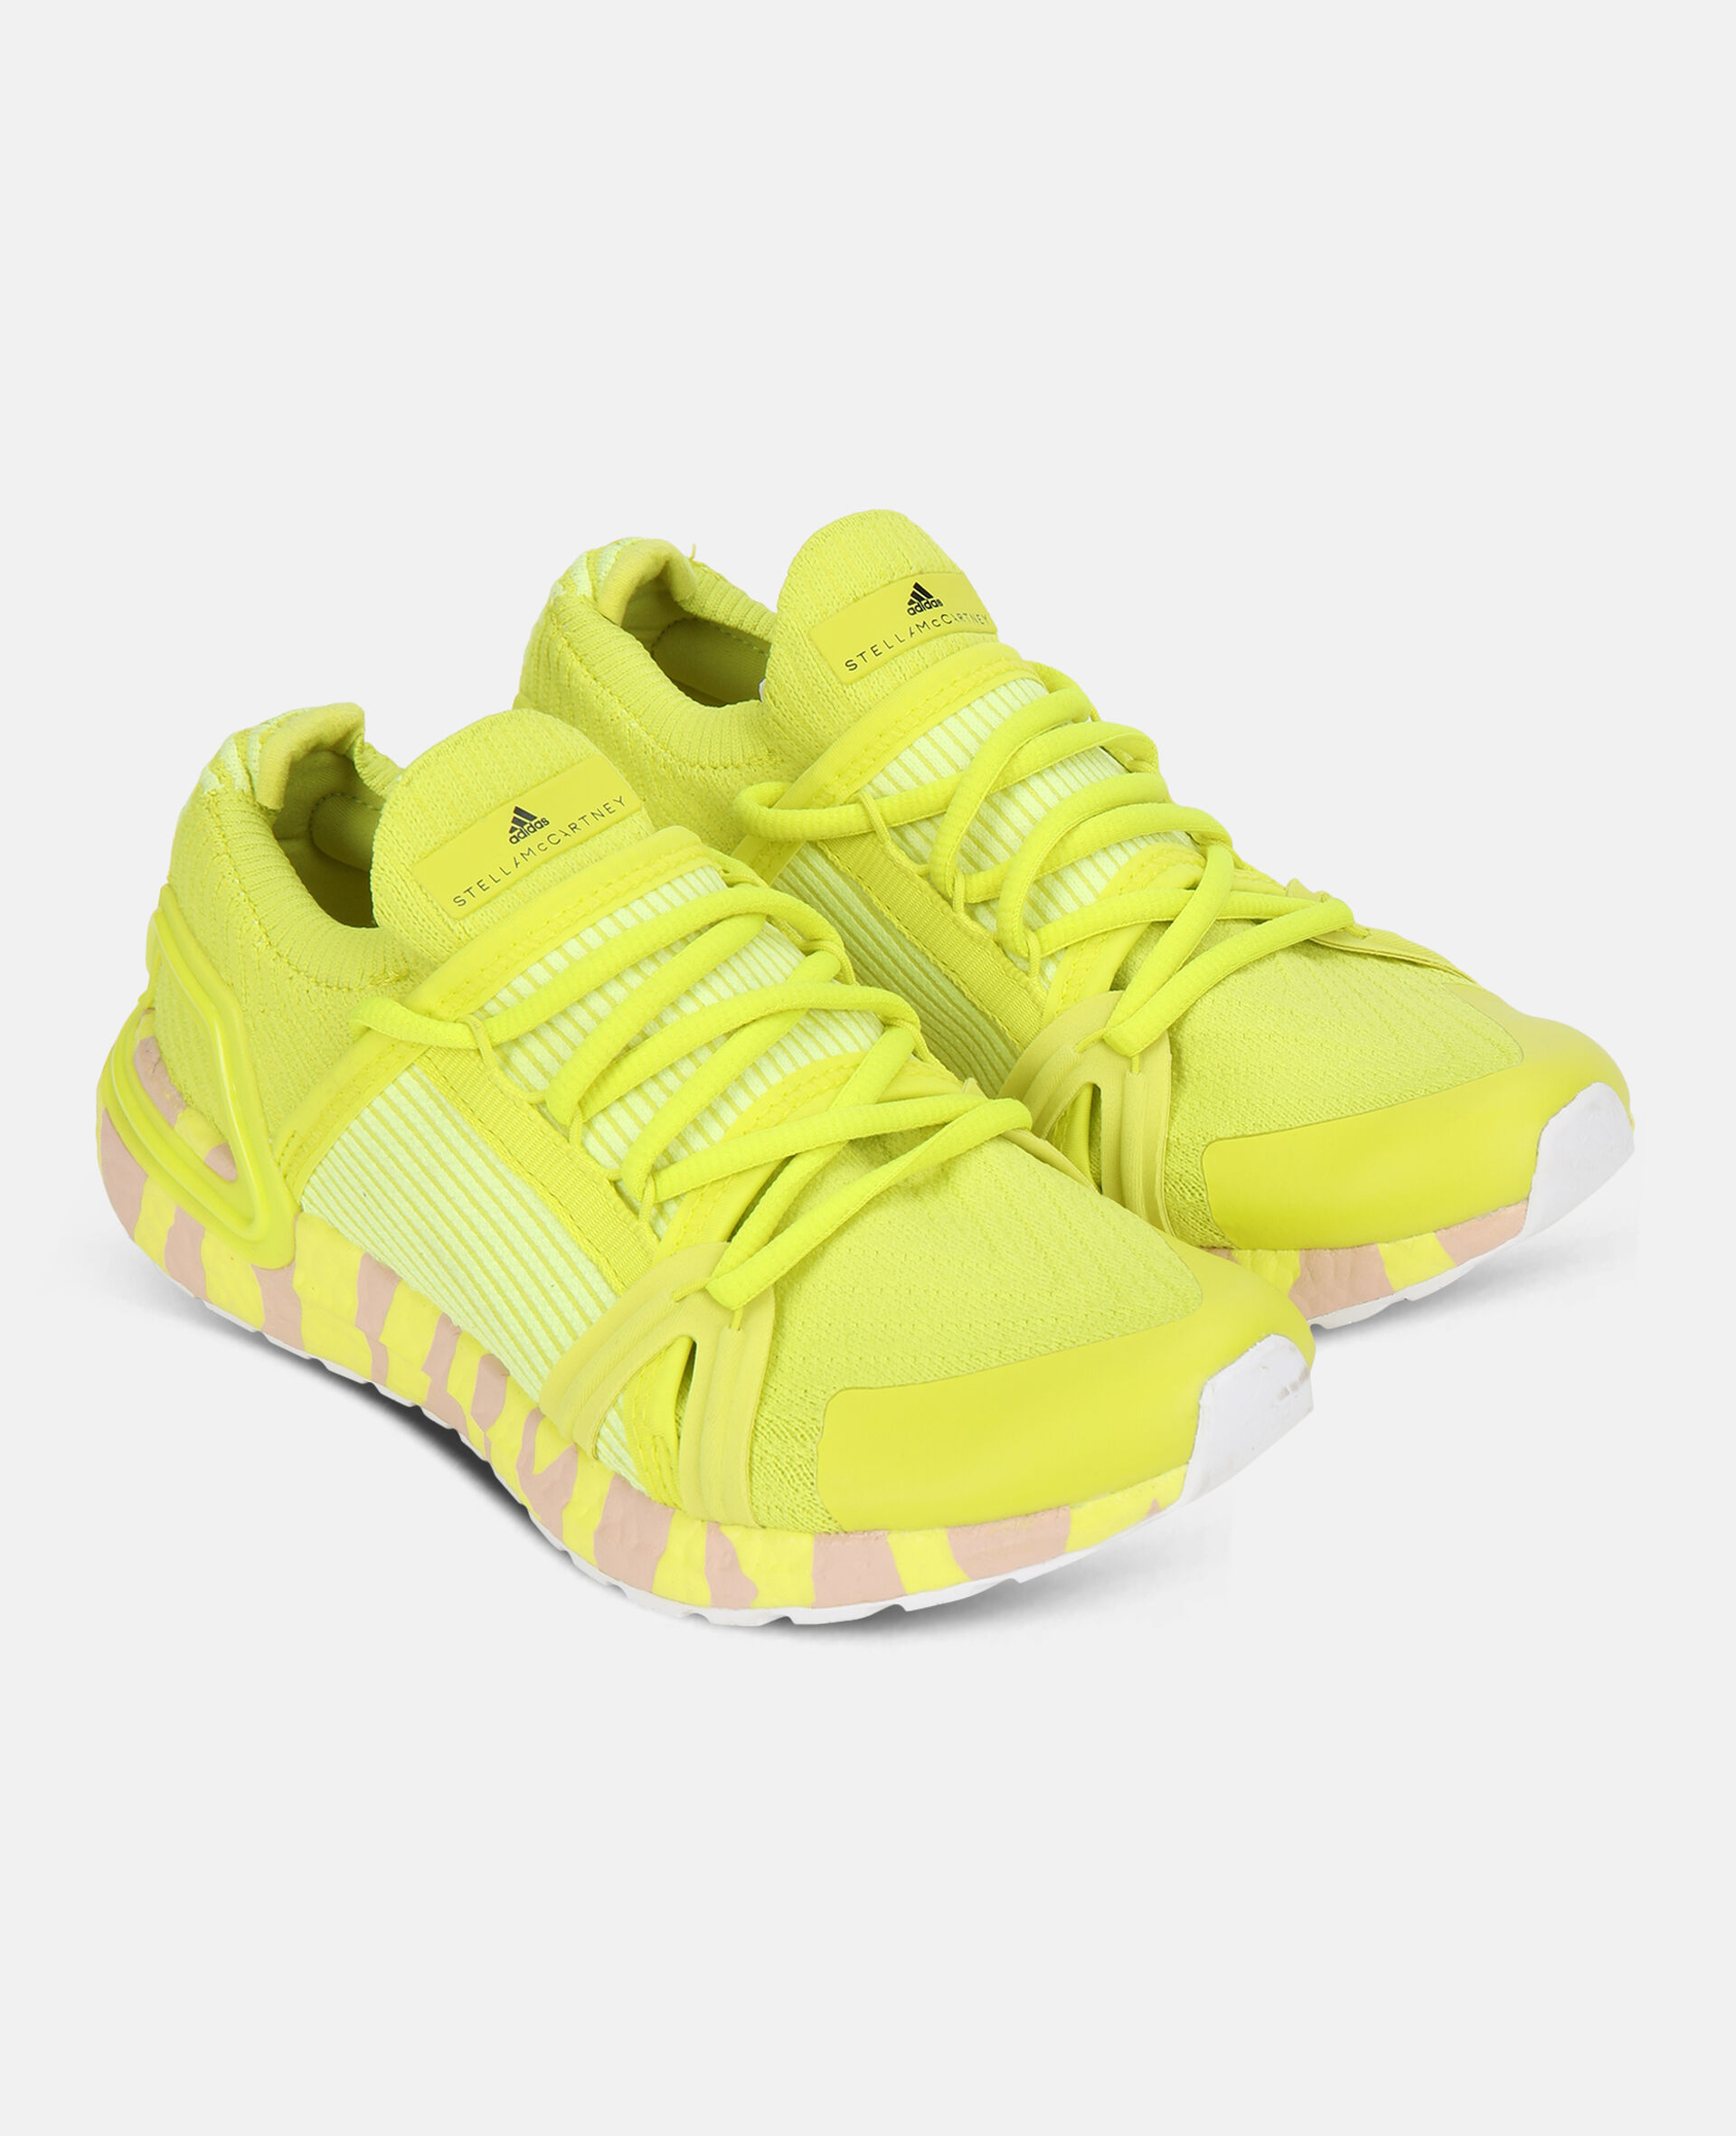 Yellow Ultraboost 20 Sneakers  -Yellow-large image number 1